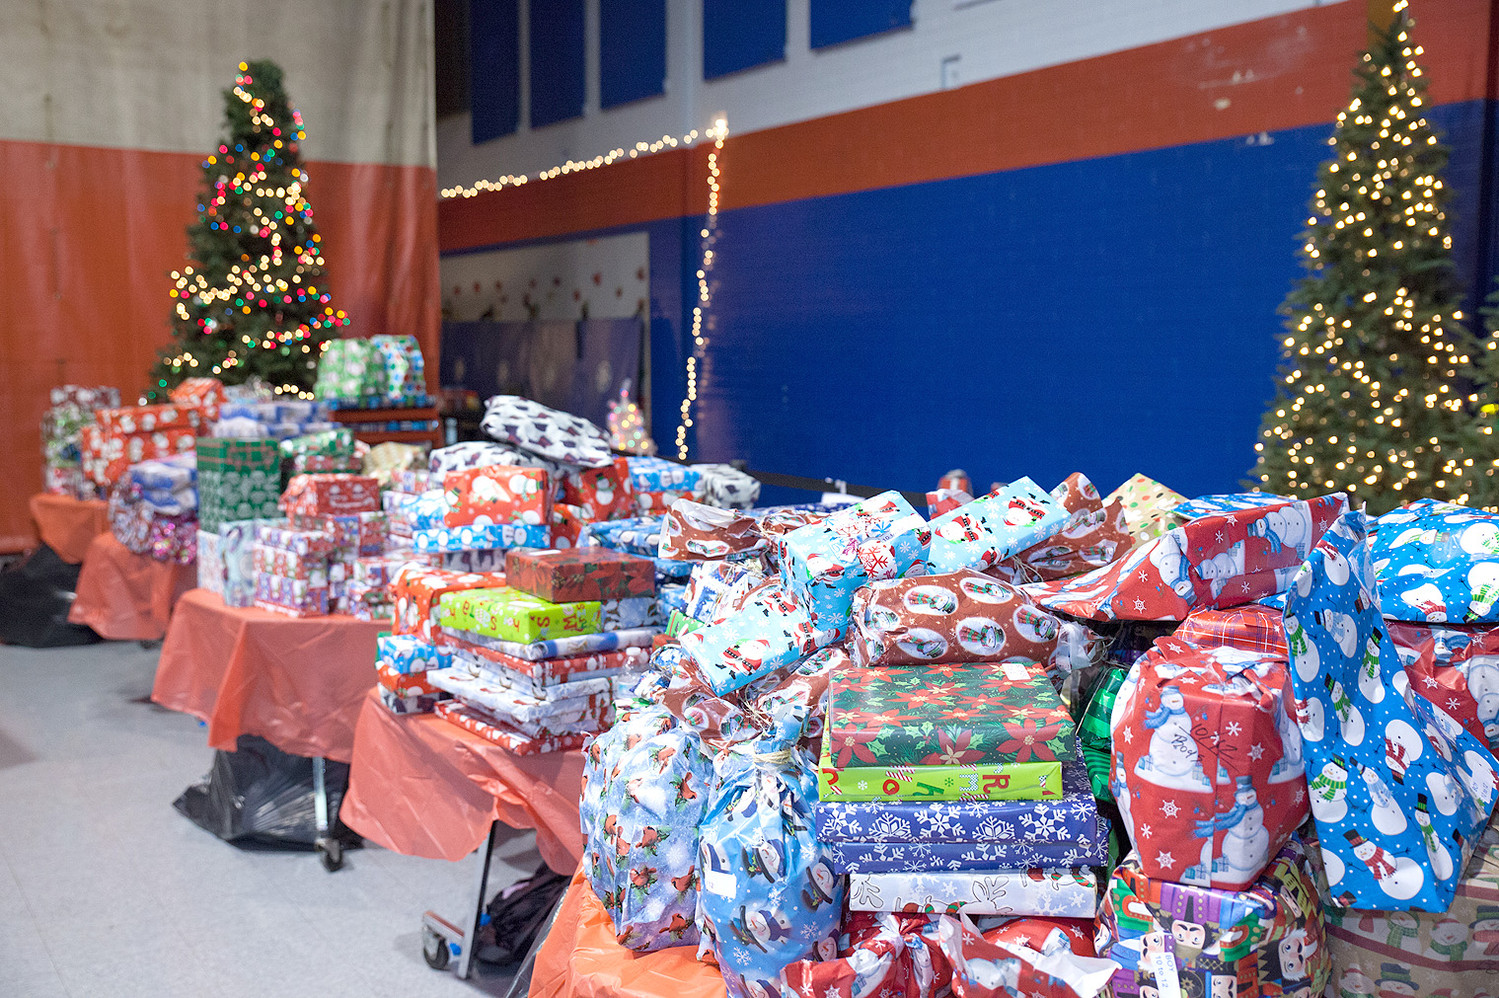 MOUNTAINS OF PRESENTS awaited each child after the activities and food at the Catch the Spirit event.  Each table is separated by age range and gender.